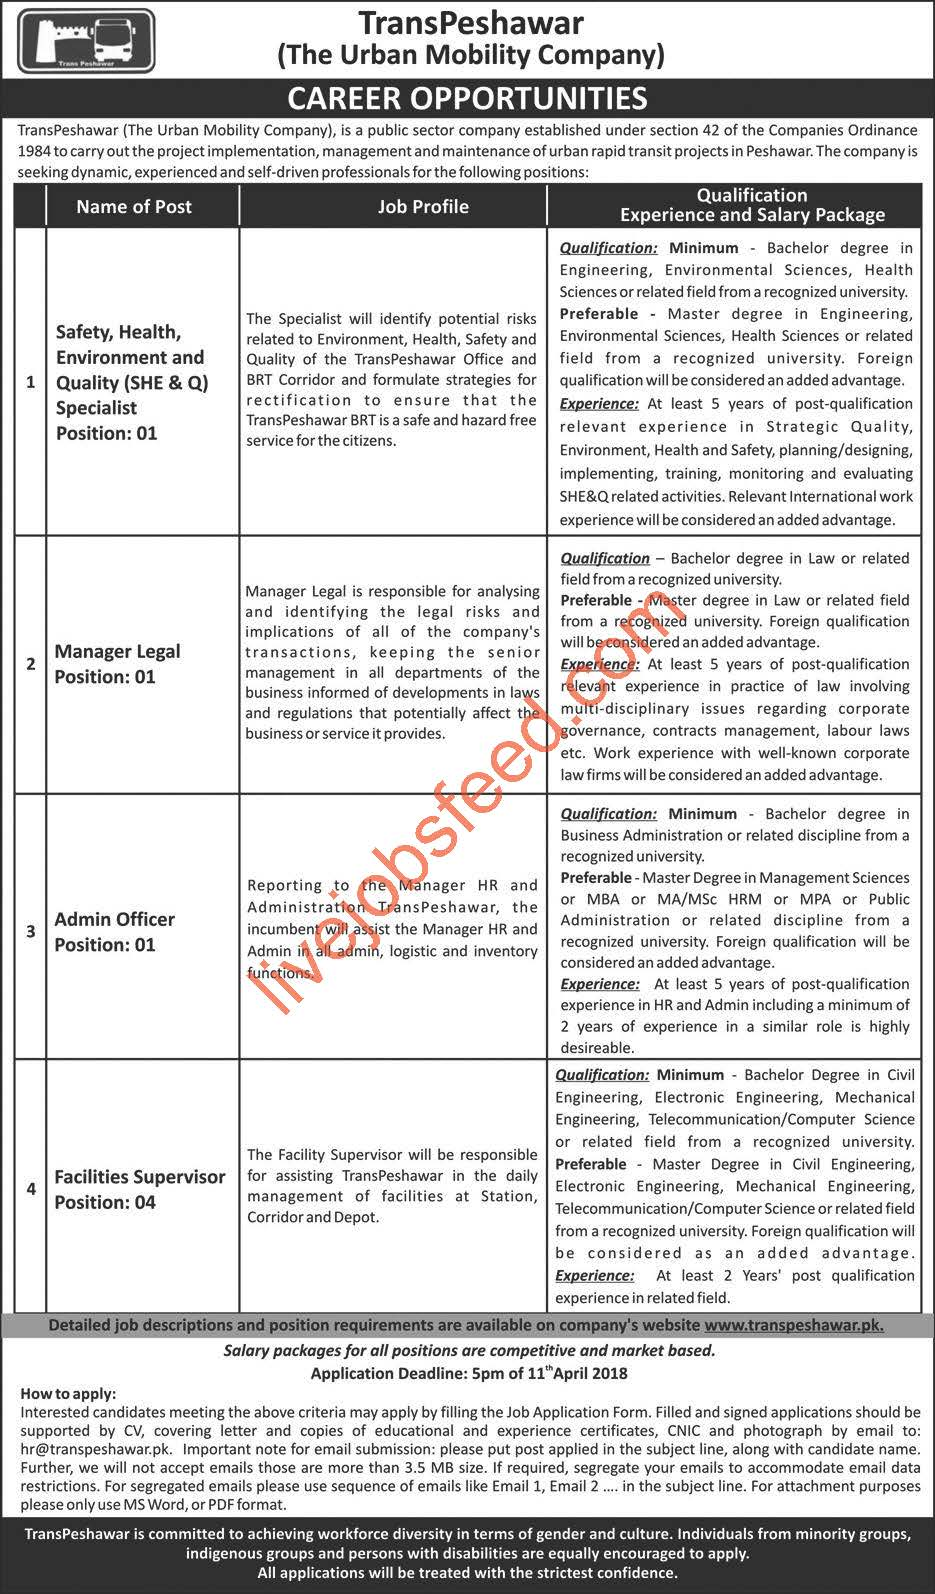 transpeshawar the urban mobility company career opportunity manager legal admin officer qhse specialist financial supervisor apply last date 11 4 2018